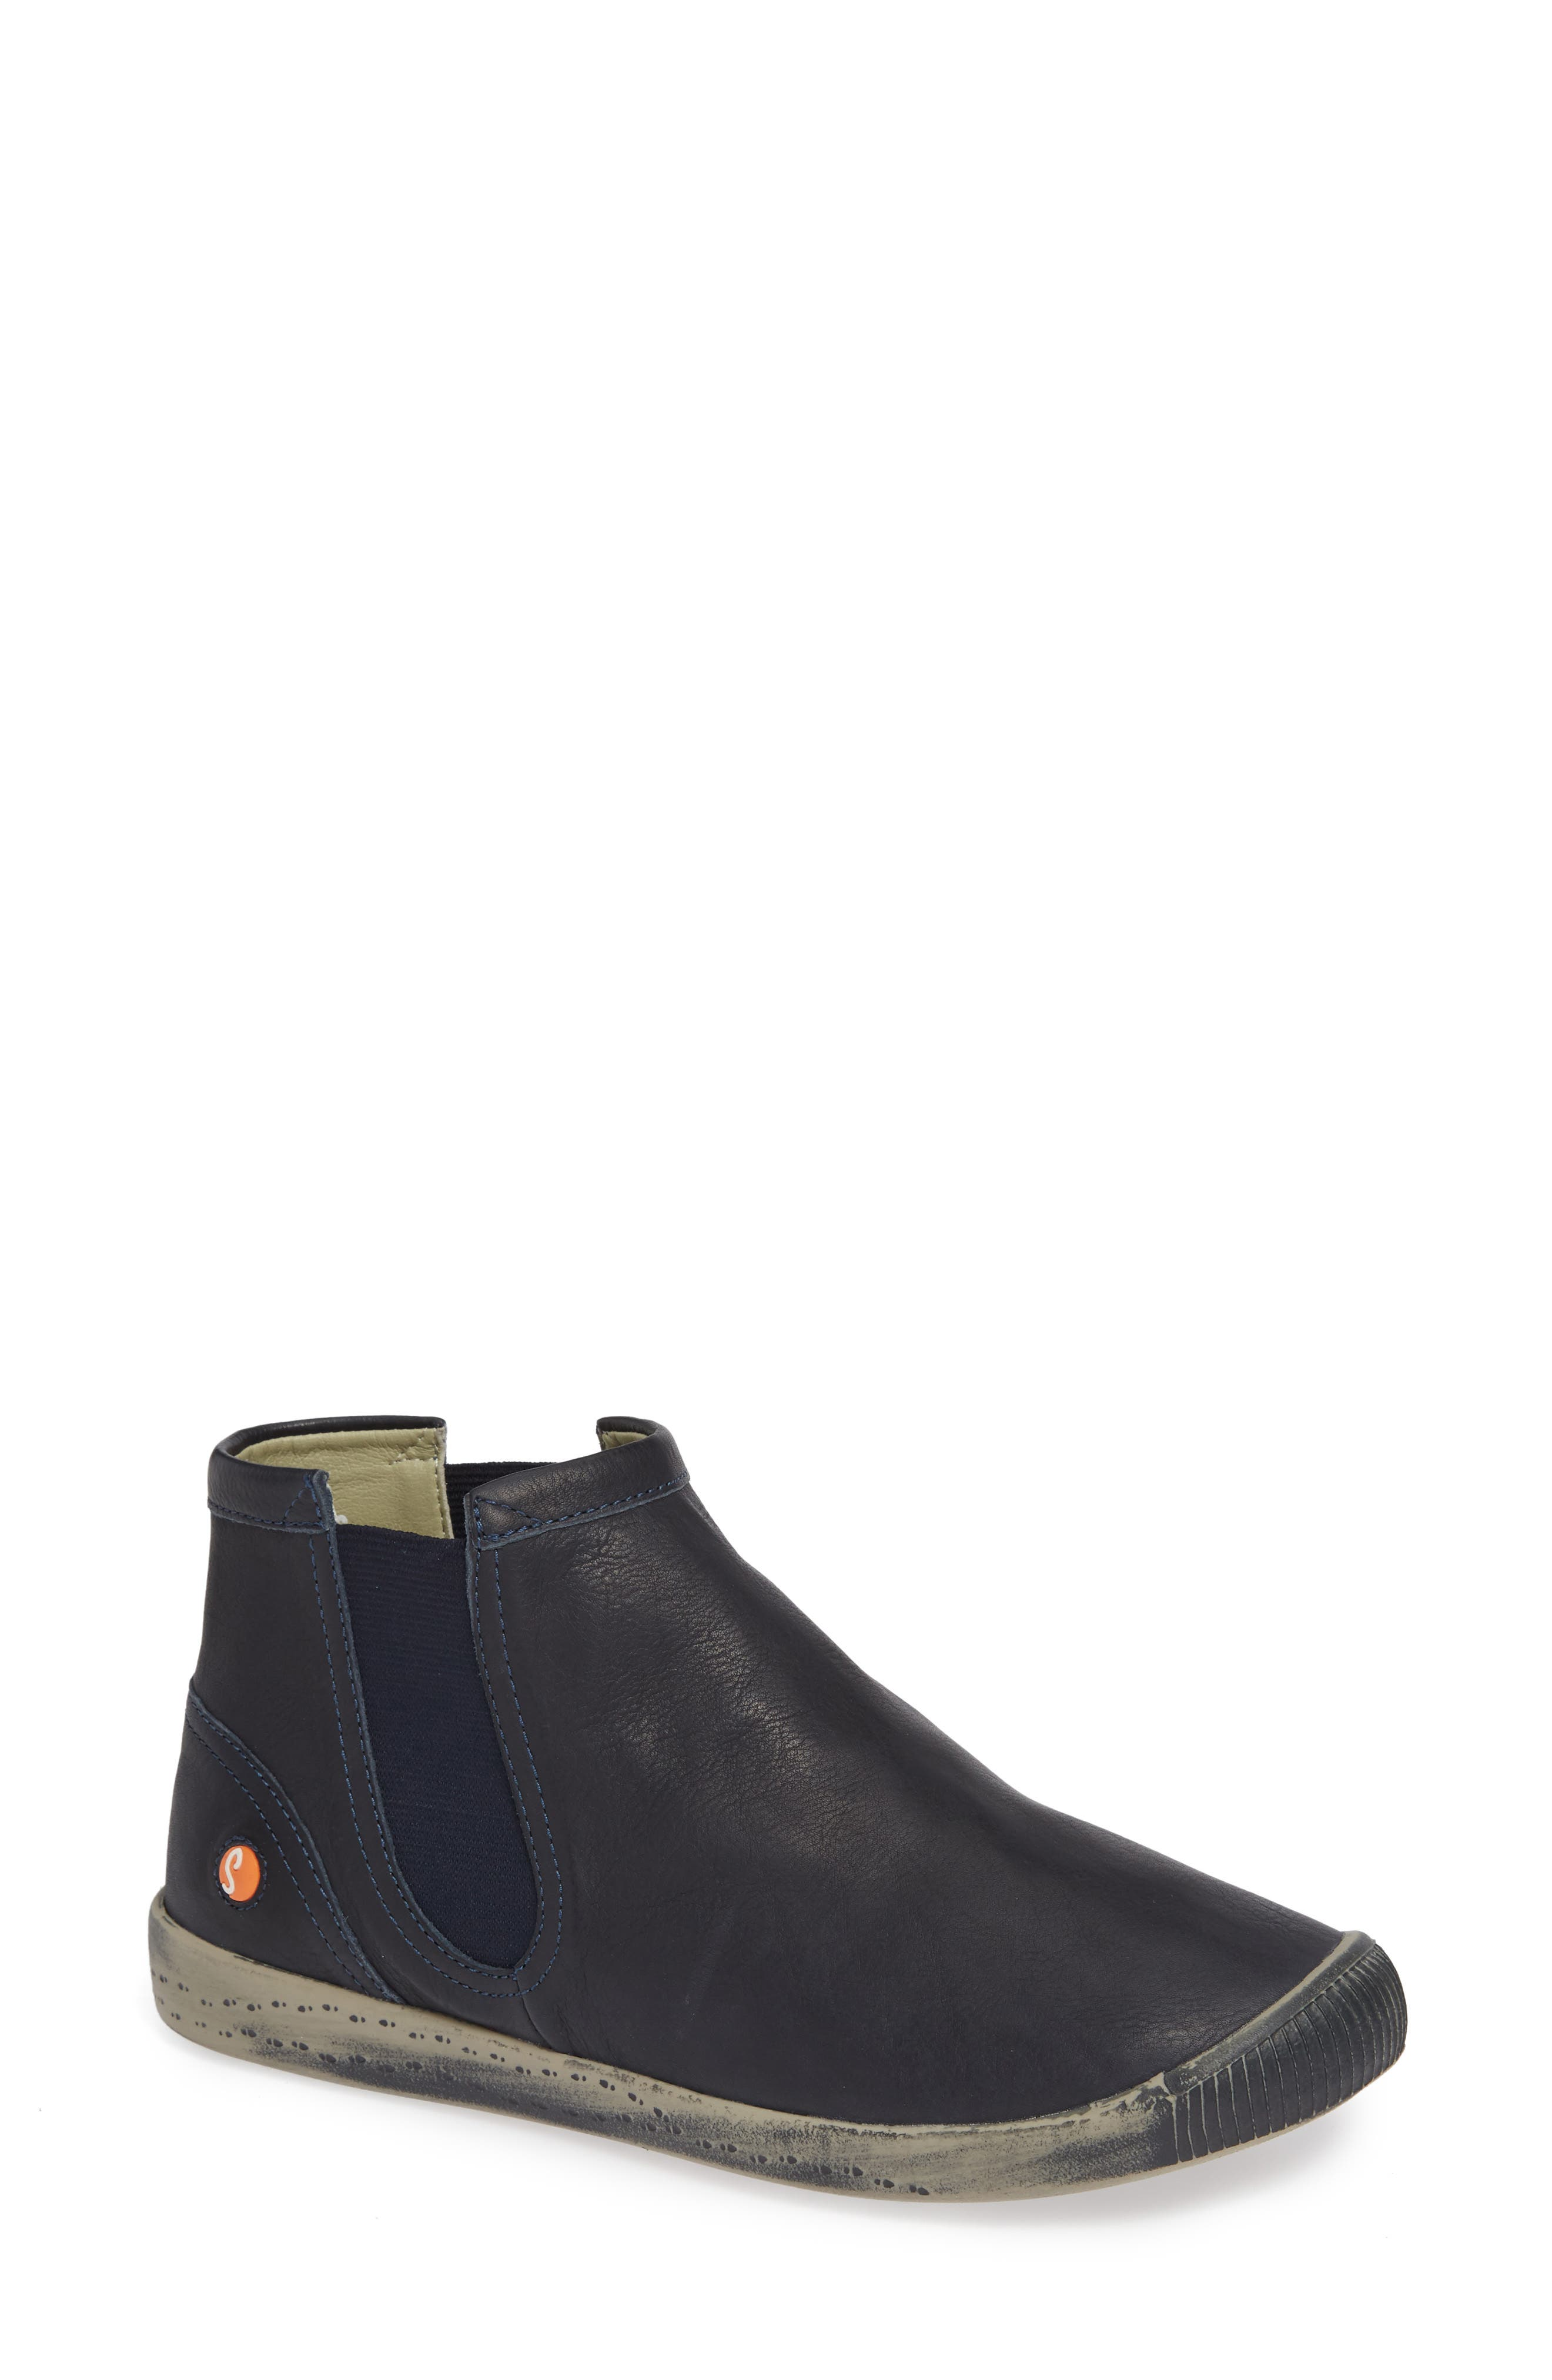 SOFTINOS BY FLY LONDON,                             Ici Sneaker,                             Main thumbnail 1, color,                             NAVY SMOOTH LEATHER